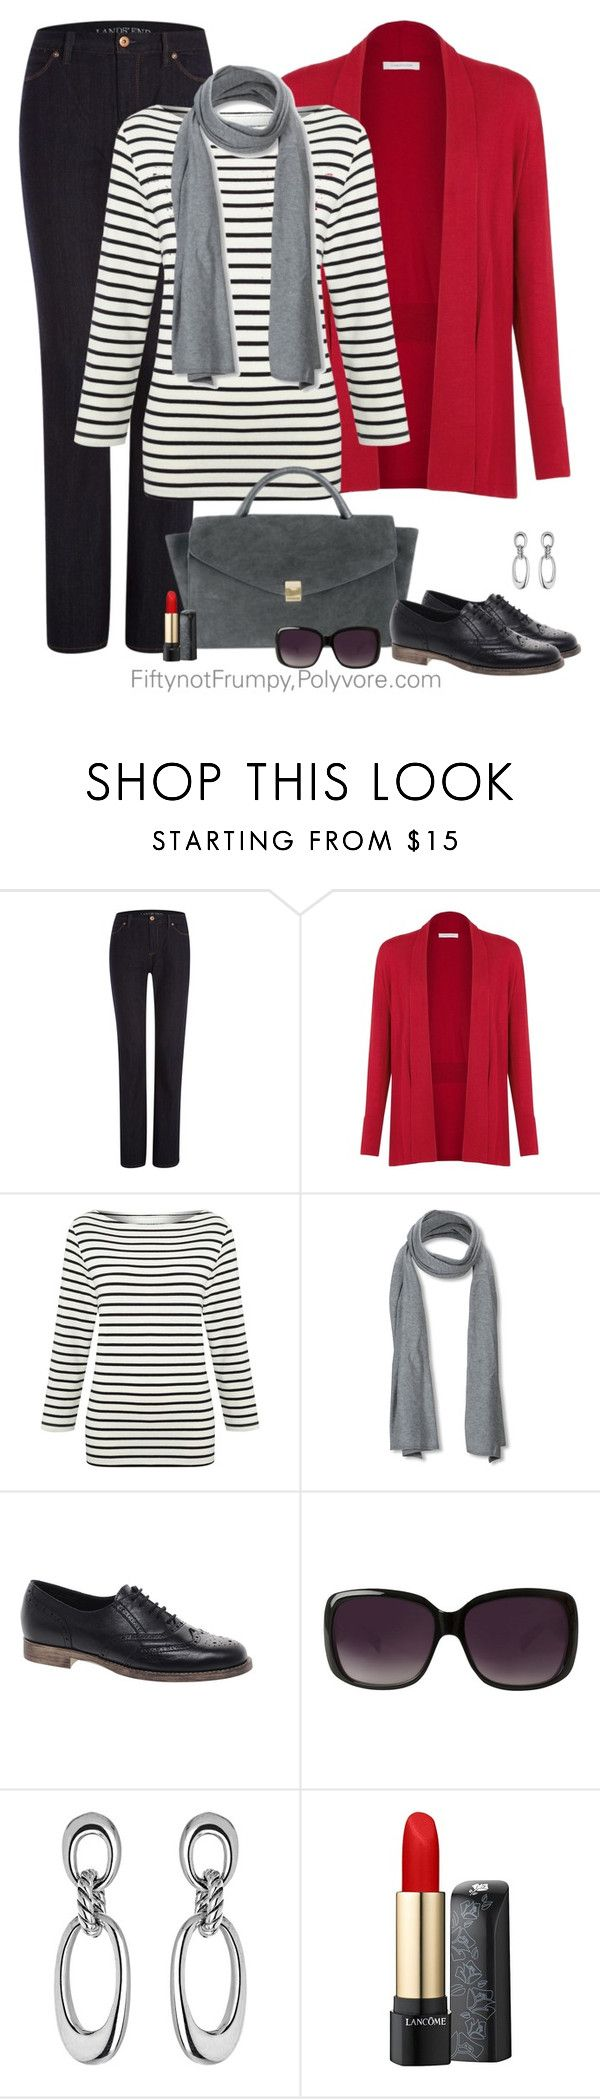 Gone Shopping by fiftynotfrumpy on Polyvore featuring Windsmoor, Lands' End, ASOS, SELECTED, Merona, Lancôme and Calle